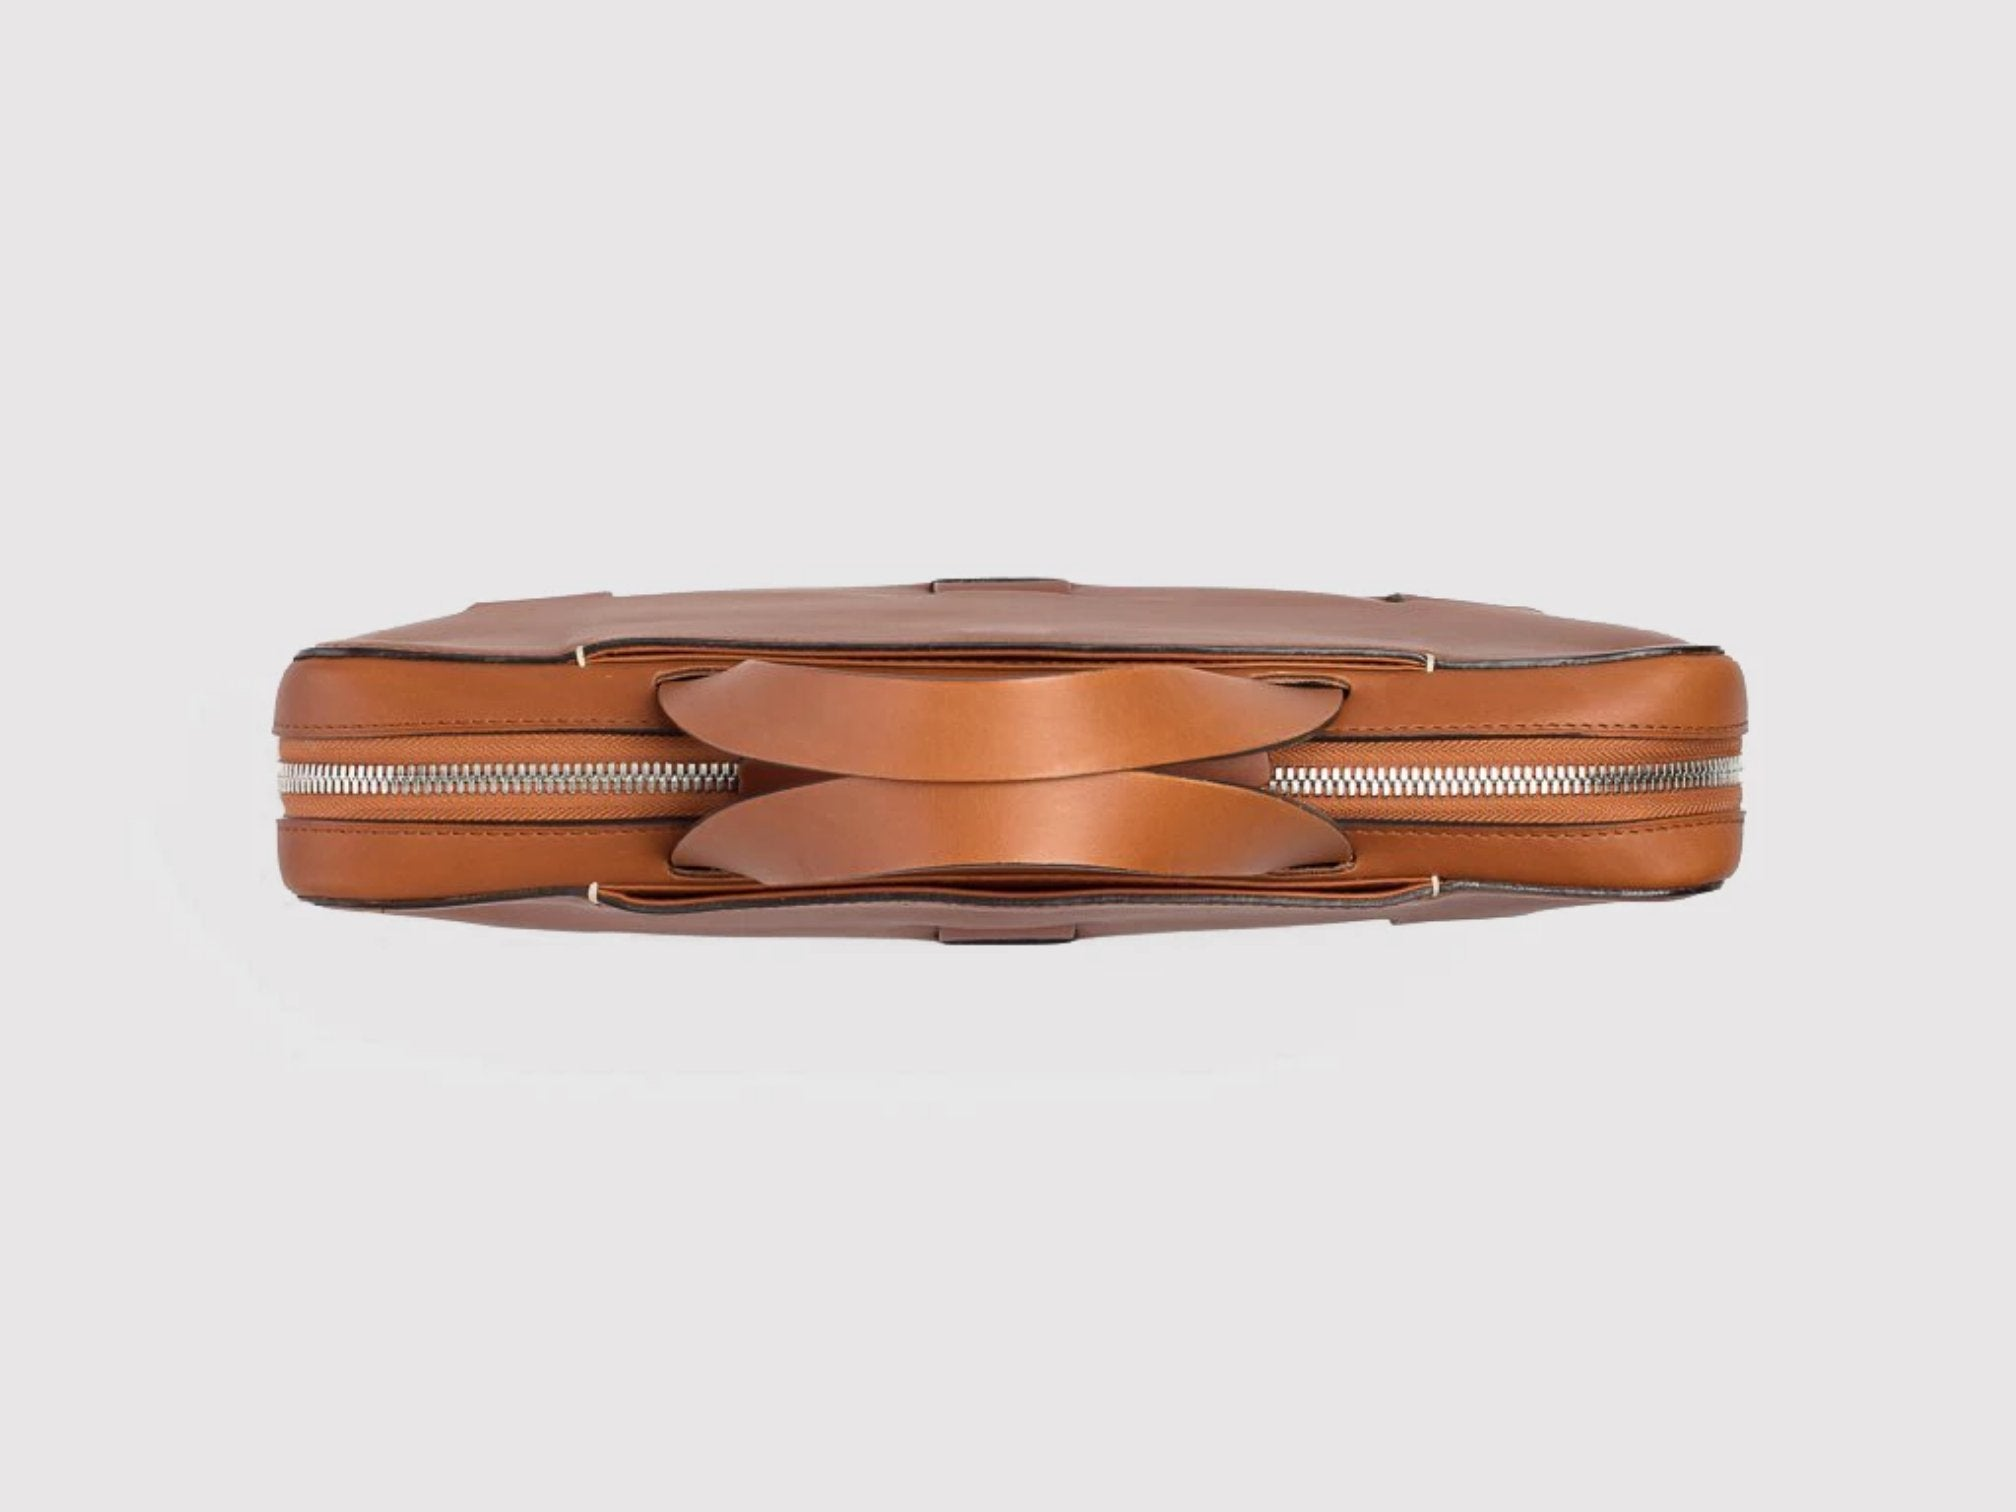 anson calder slim brief french calfskin leather _cognac